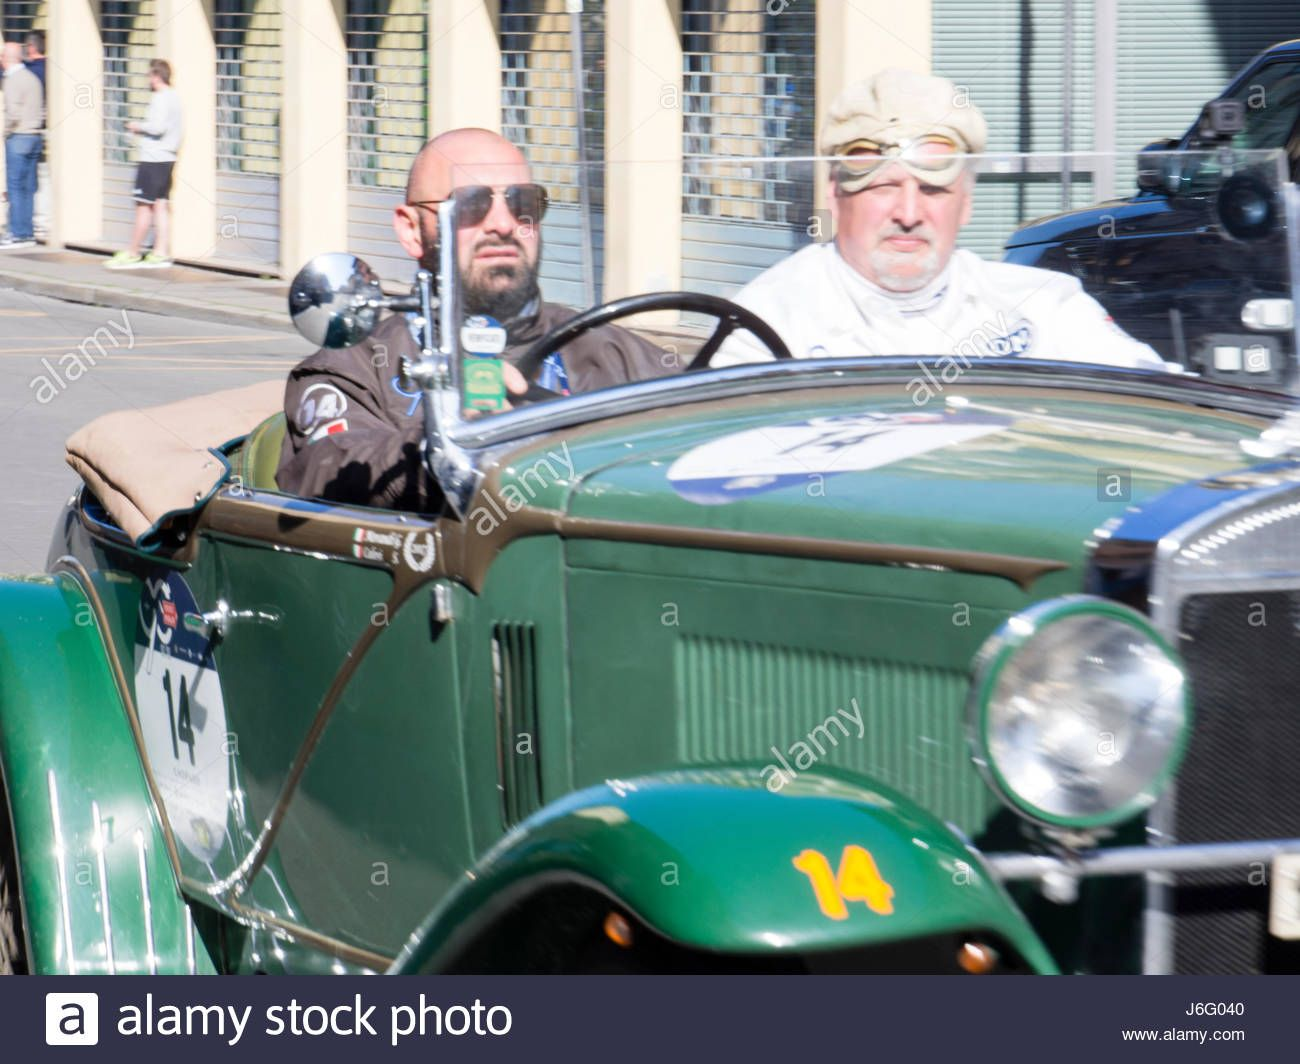 Download this stock image: Cremona Checkpoint, Italy. 21st May, 2017. Millemiglia Historical Classic Car Rally - May 21 st 2017 - Cremona Checkpoint, Italy Credit: Augusto Colombo - ITALIA-/Alamy Live News - J6G040 from Alamy's library of millions of high resolution stock photos, illustrations and vectors.